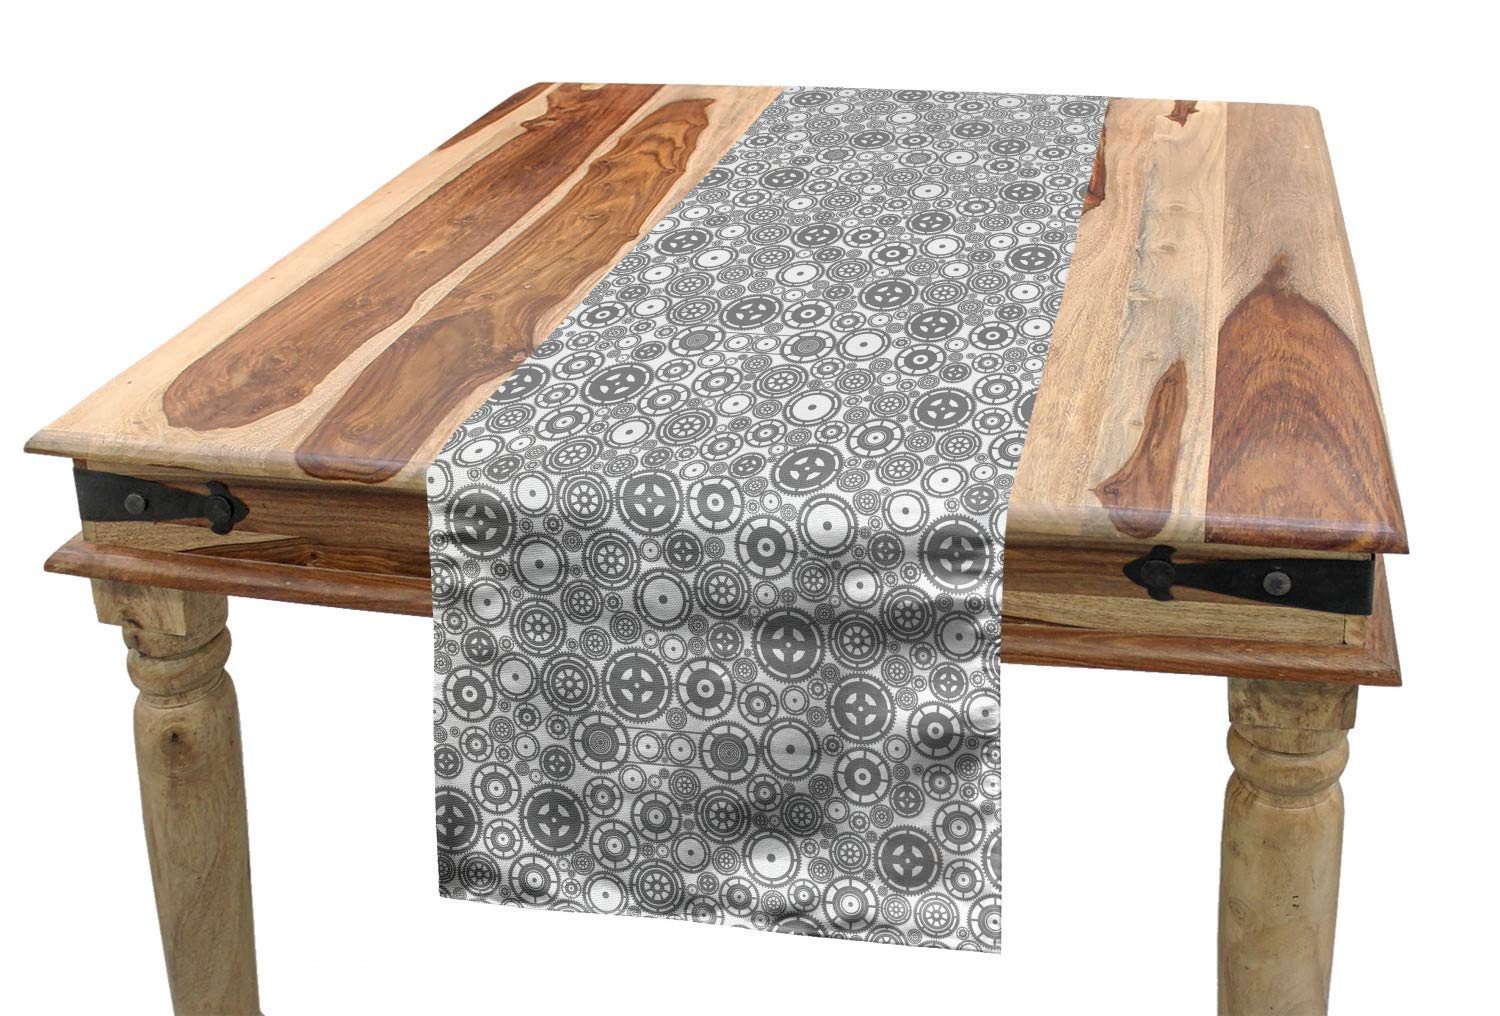 16 W X 72 L Inches Dining Room Kitchen Rectangular Runner Different Types and Sizes of Cogwheels Illustration Factory Engineering Theme ABAKUHAUS Steampunk Table Runner White and Grey